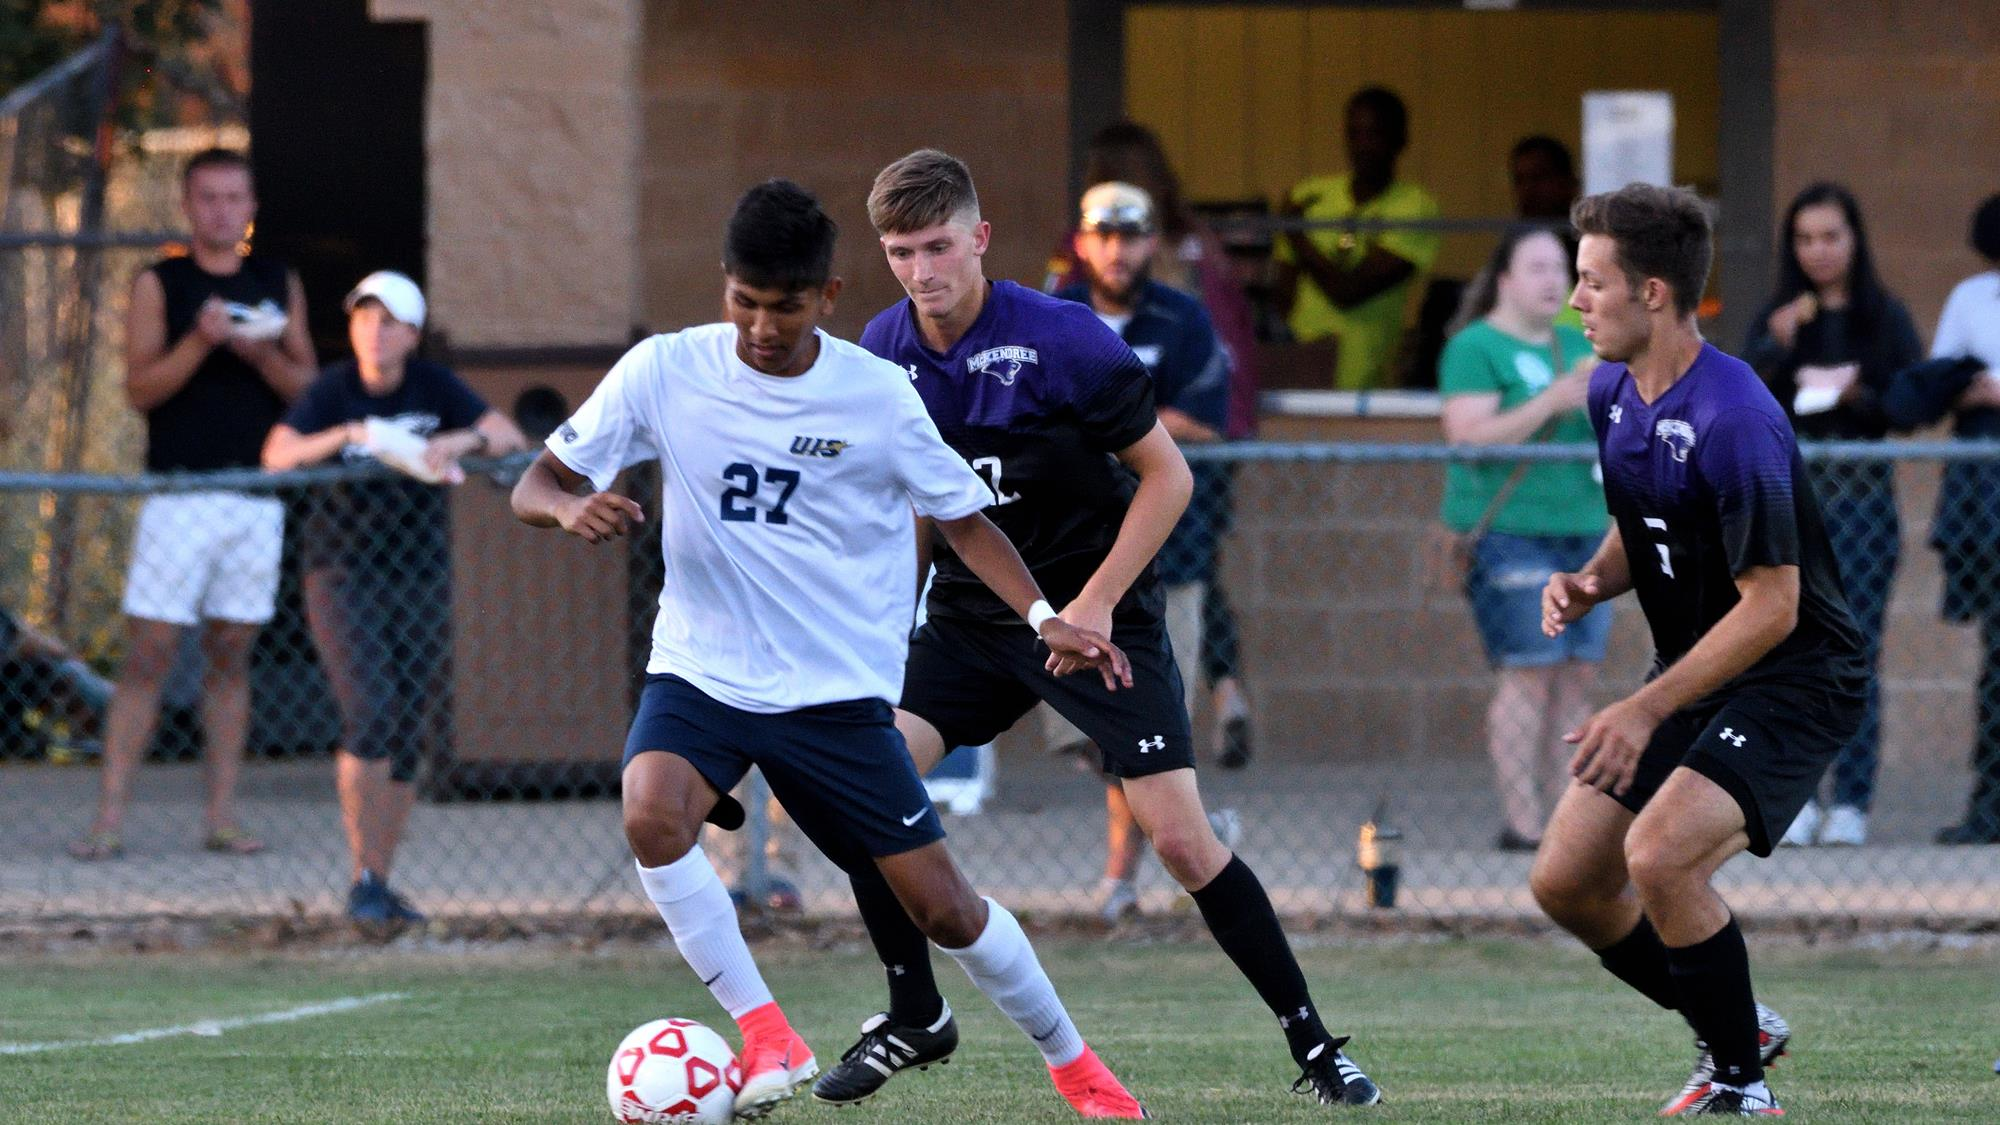 Uis Men S Soccer Moves To No 7 In Ncaa Regional Rankings Uis Athletics